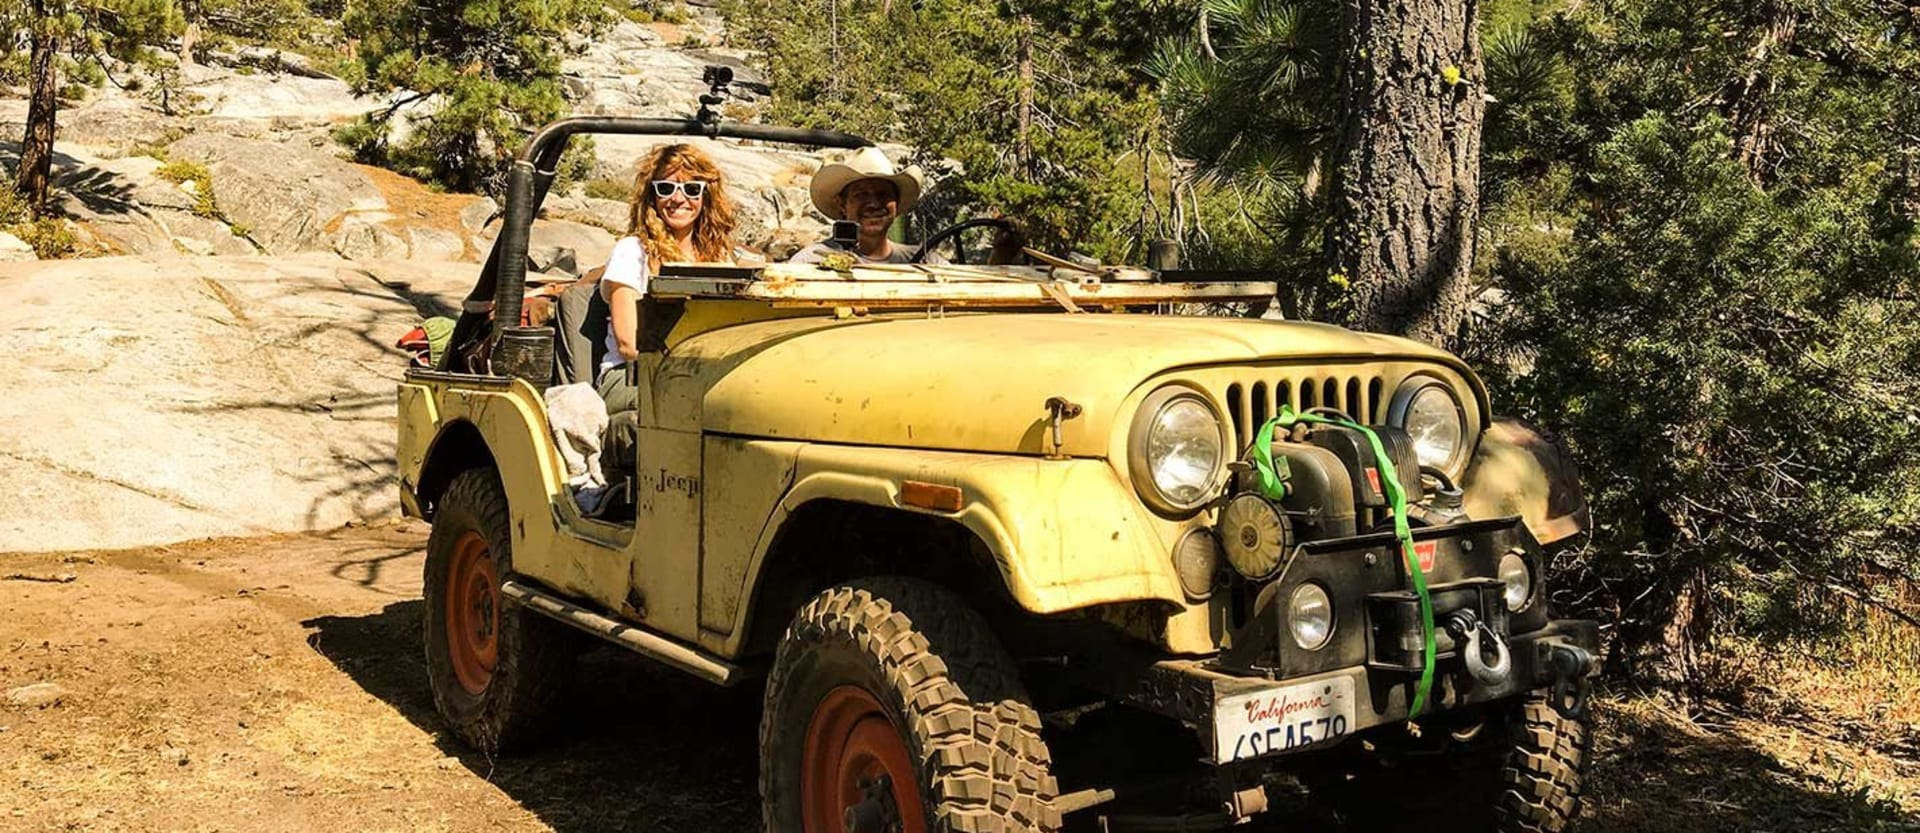 Driving a 1973 Jeep CJ-5 on the Rubicon Trail